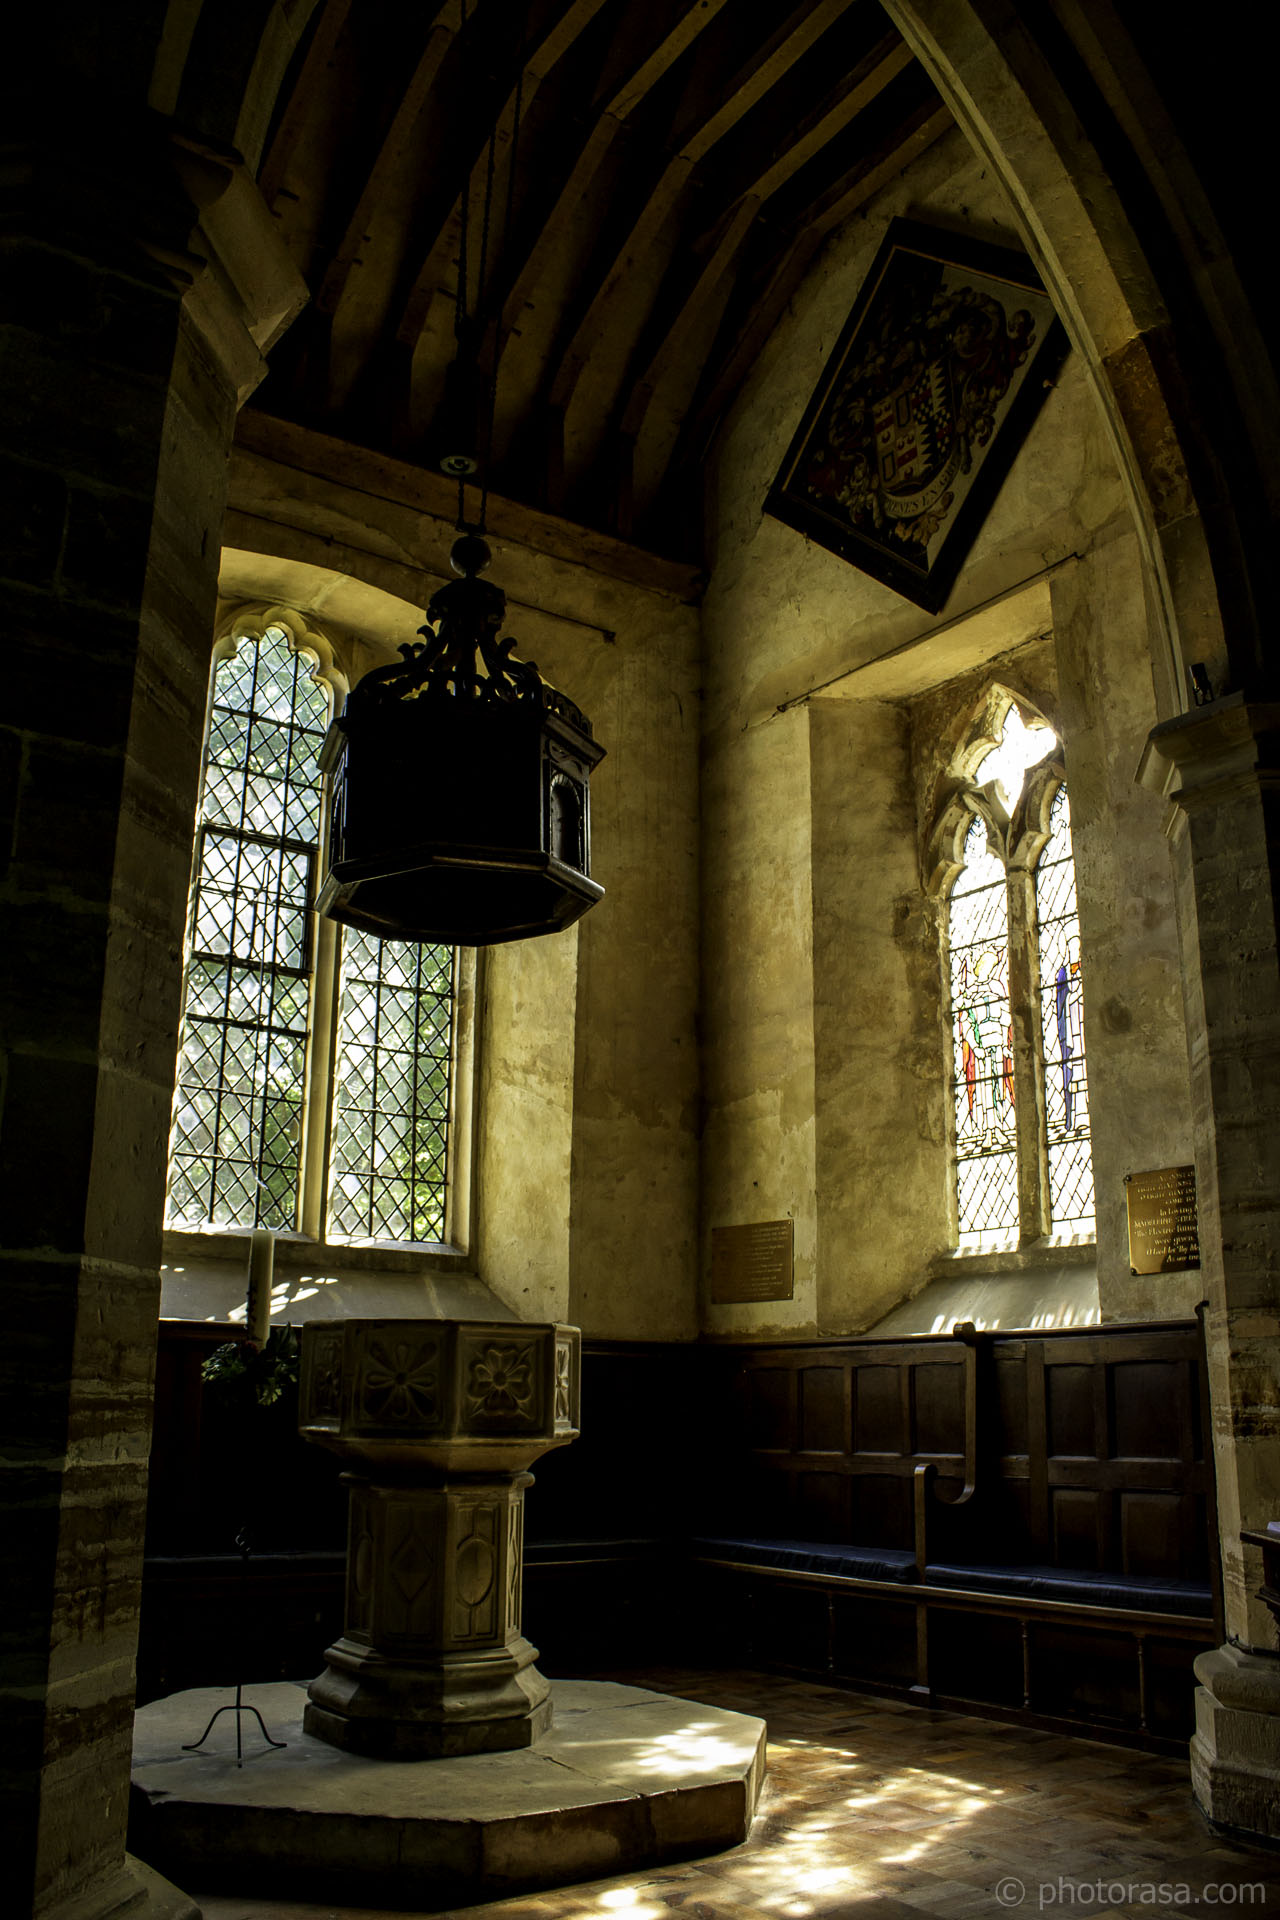 https://photorasa.com/st-marys-church-in-chiddingstone/font-and-windows/